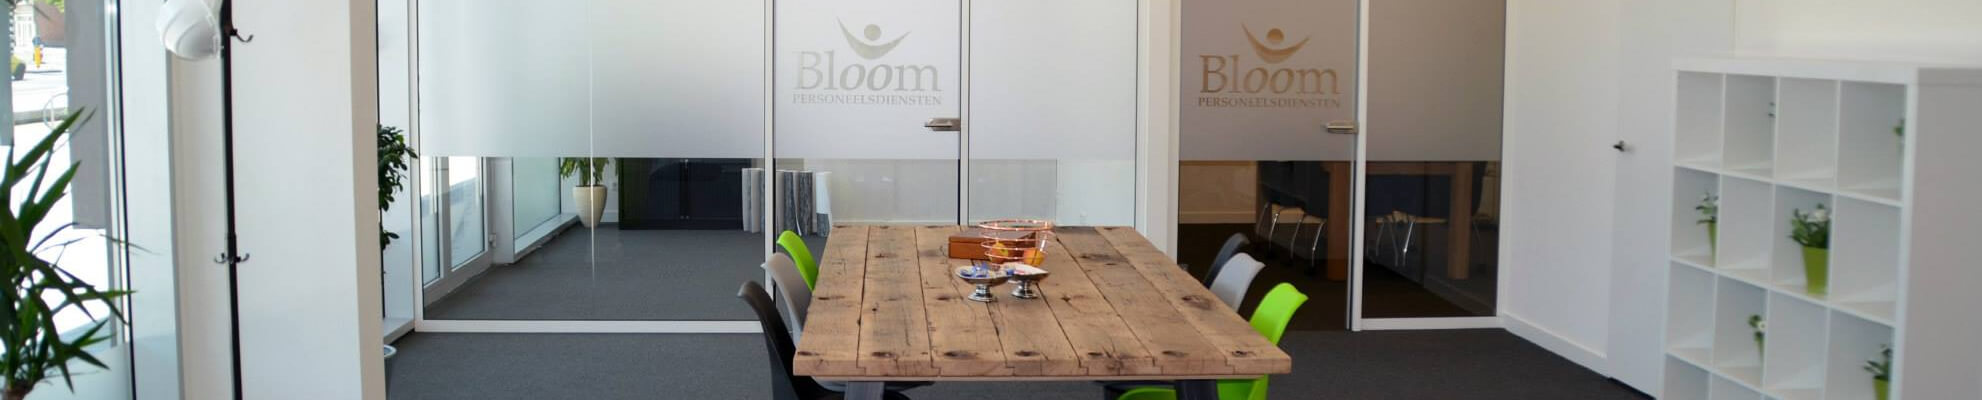 Bloom Personeeldiensten